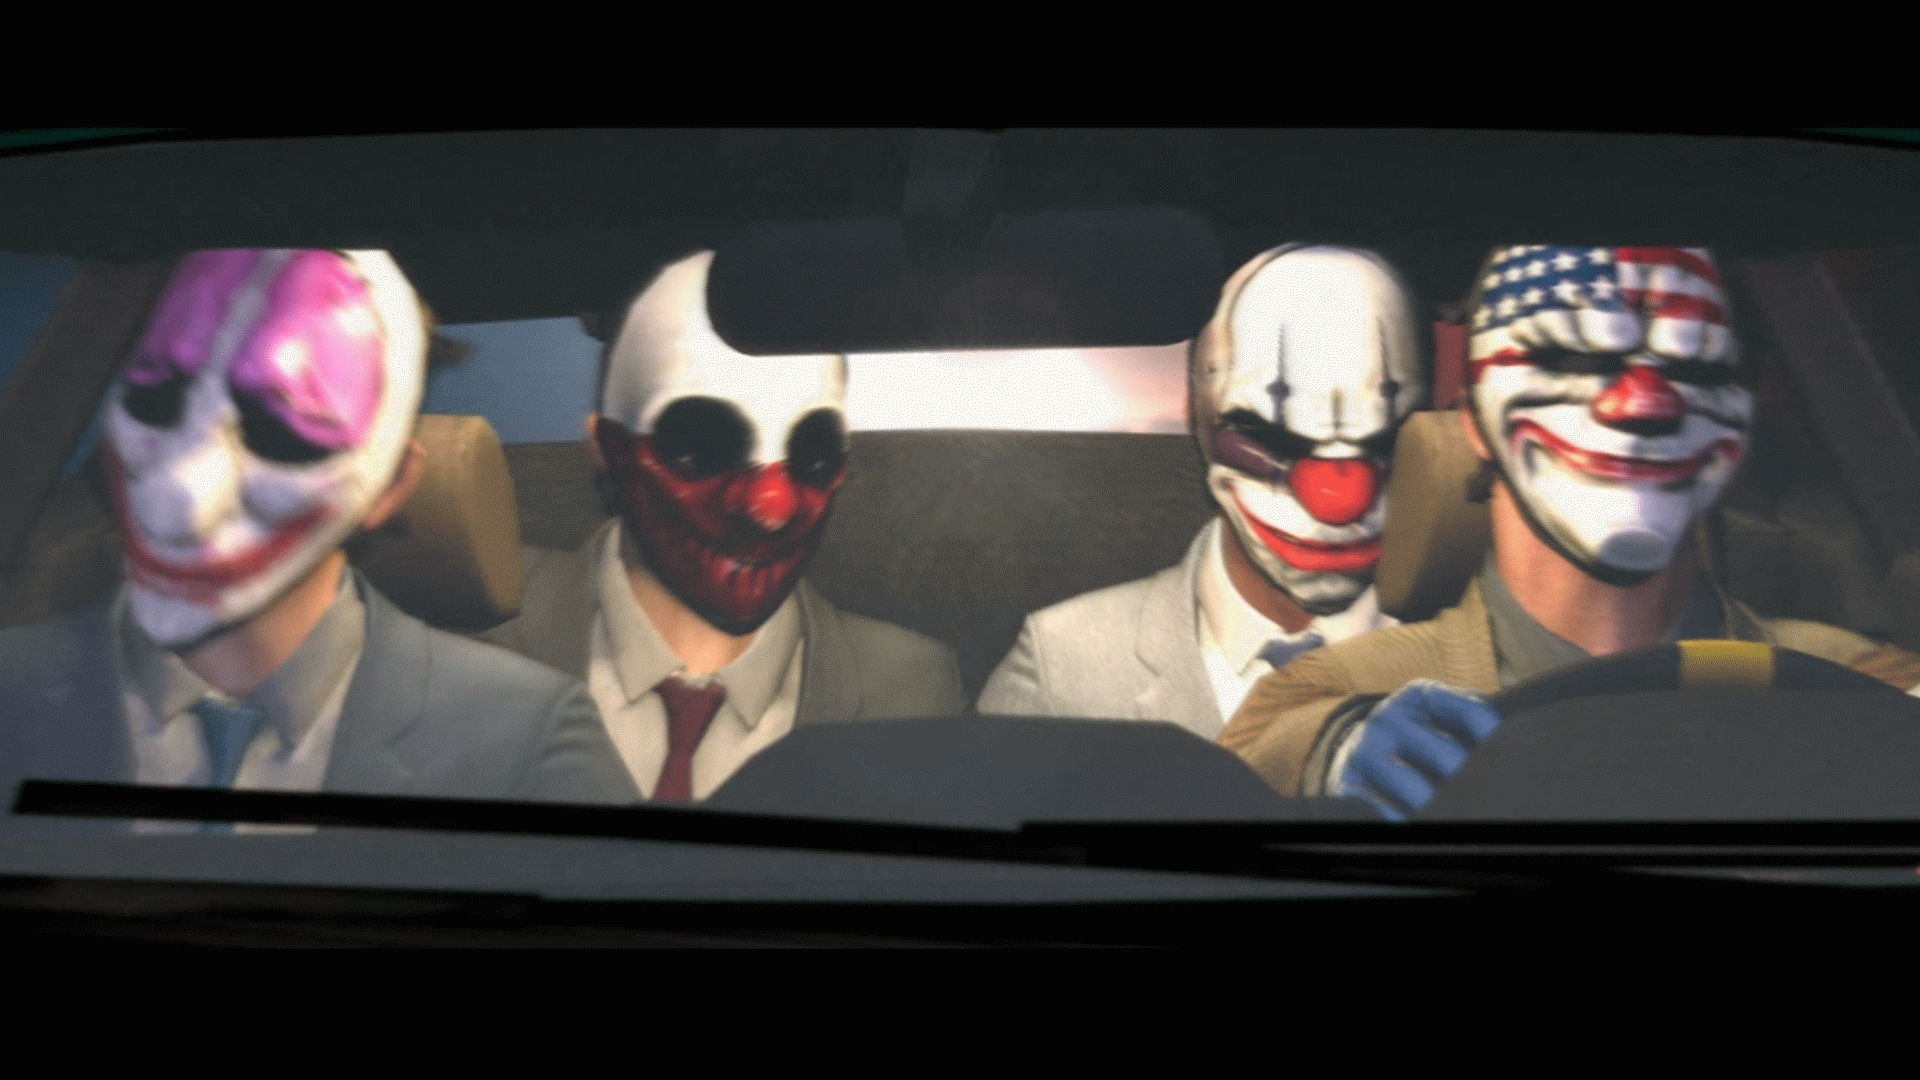 paydaytheheist, The 1920x1080 GIF you deserve, but probably not the one you'll ever need. (reddit) GIFs